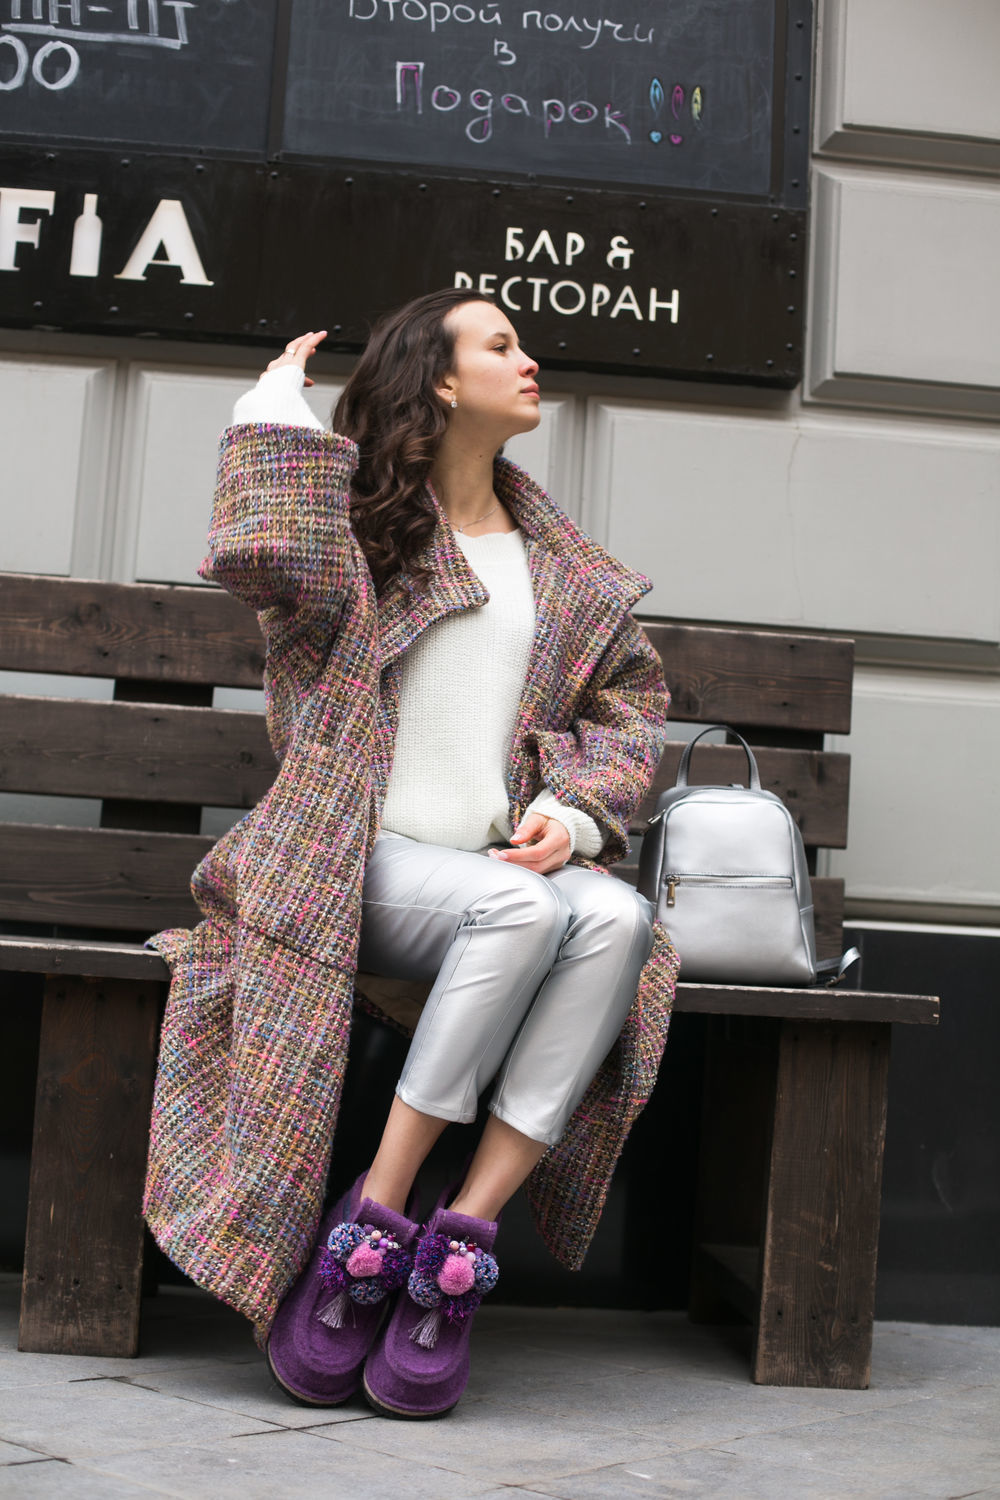 Boots women's 'LILAC DREAM' for the street, Valeshis, Moscow,  Фото №1